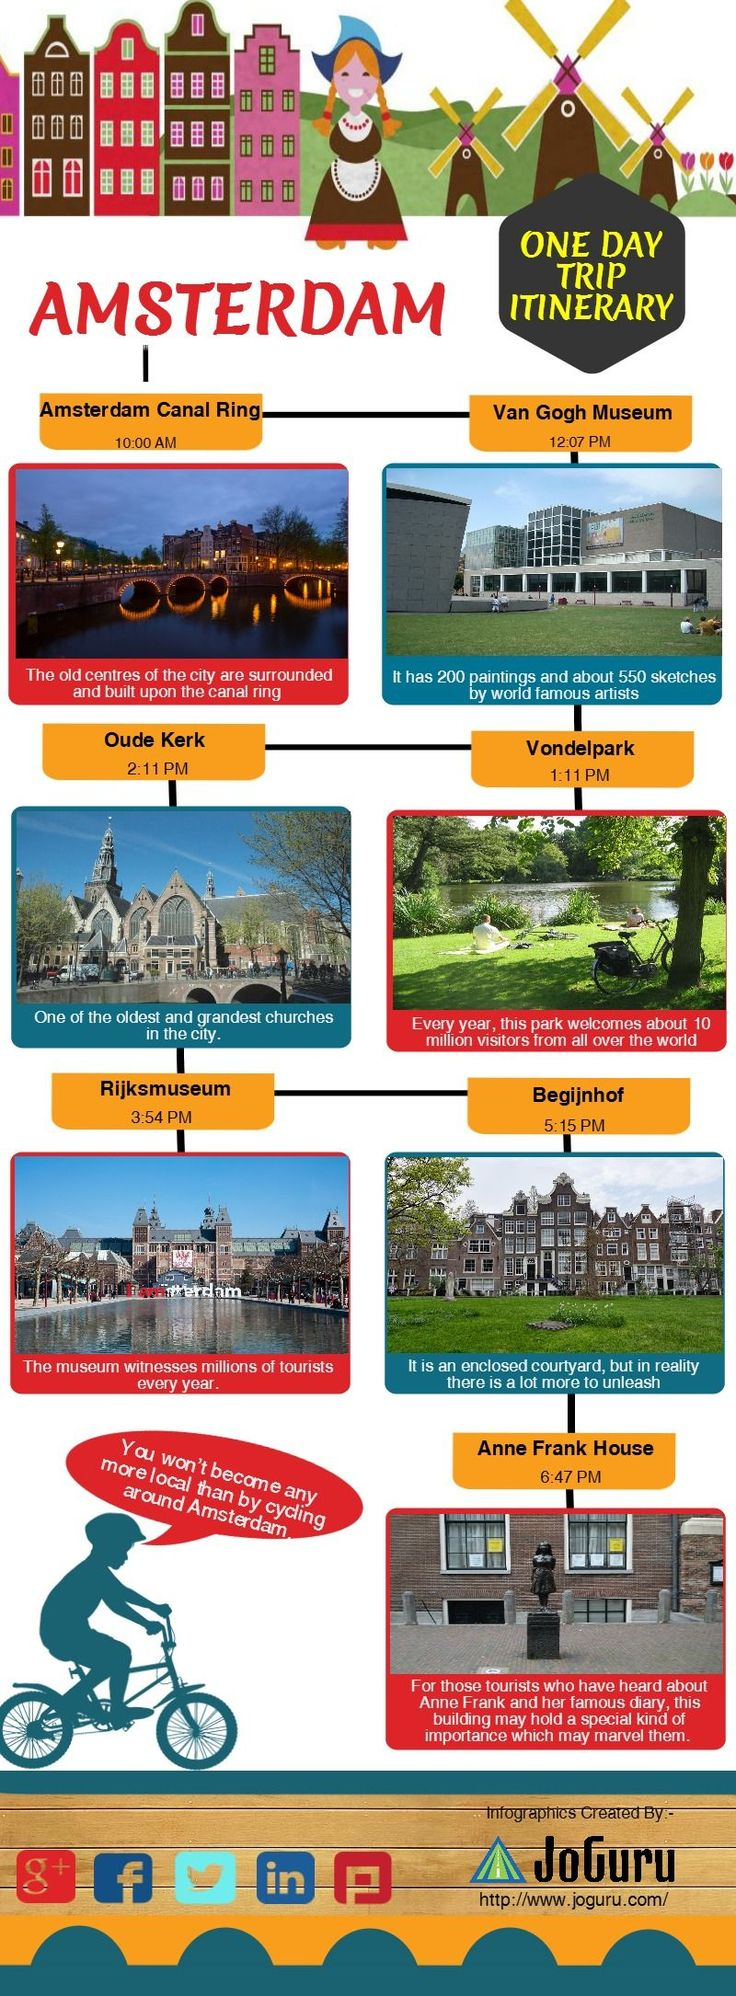 Amsterdam One Day Trip Itinerary | #infografía #Infographic Editor